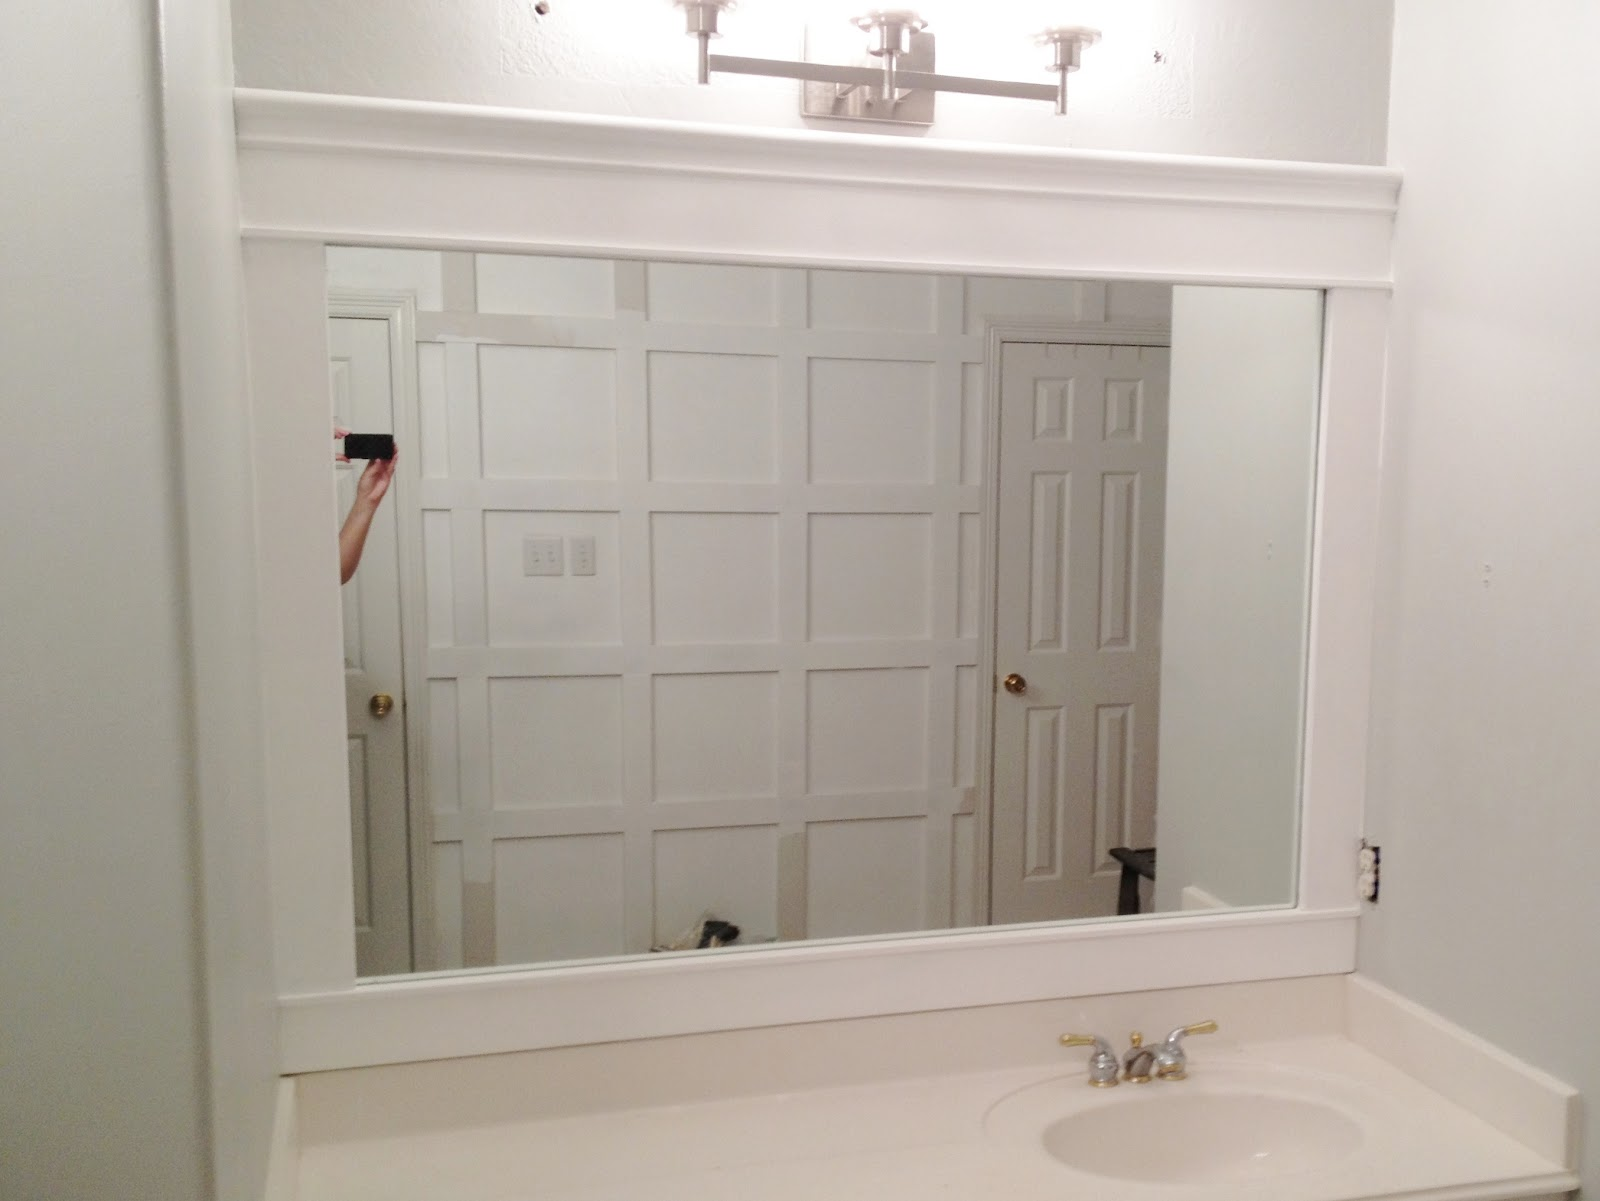 Engineering life and style framing contractor grade mirrors - Frames for bathroom vanity mirrors ...